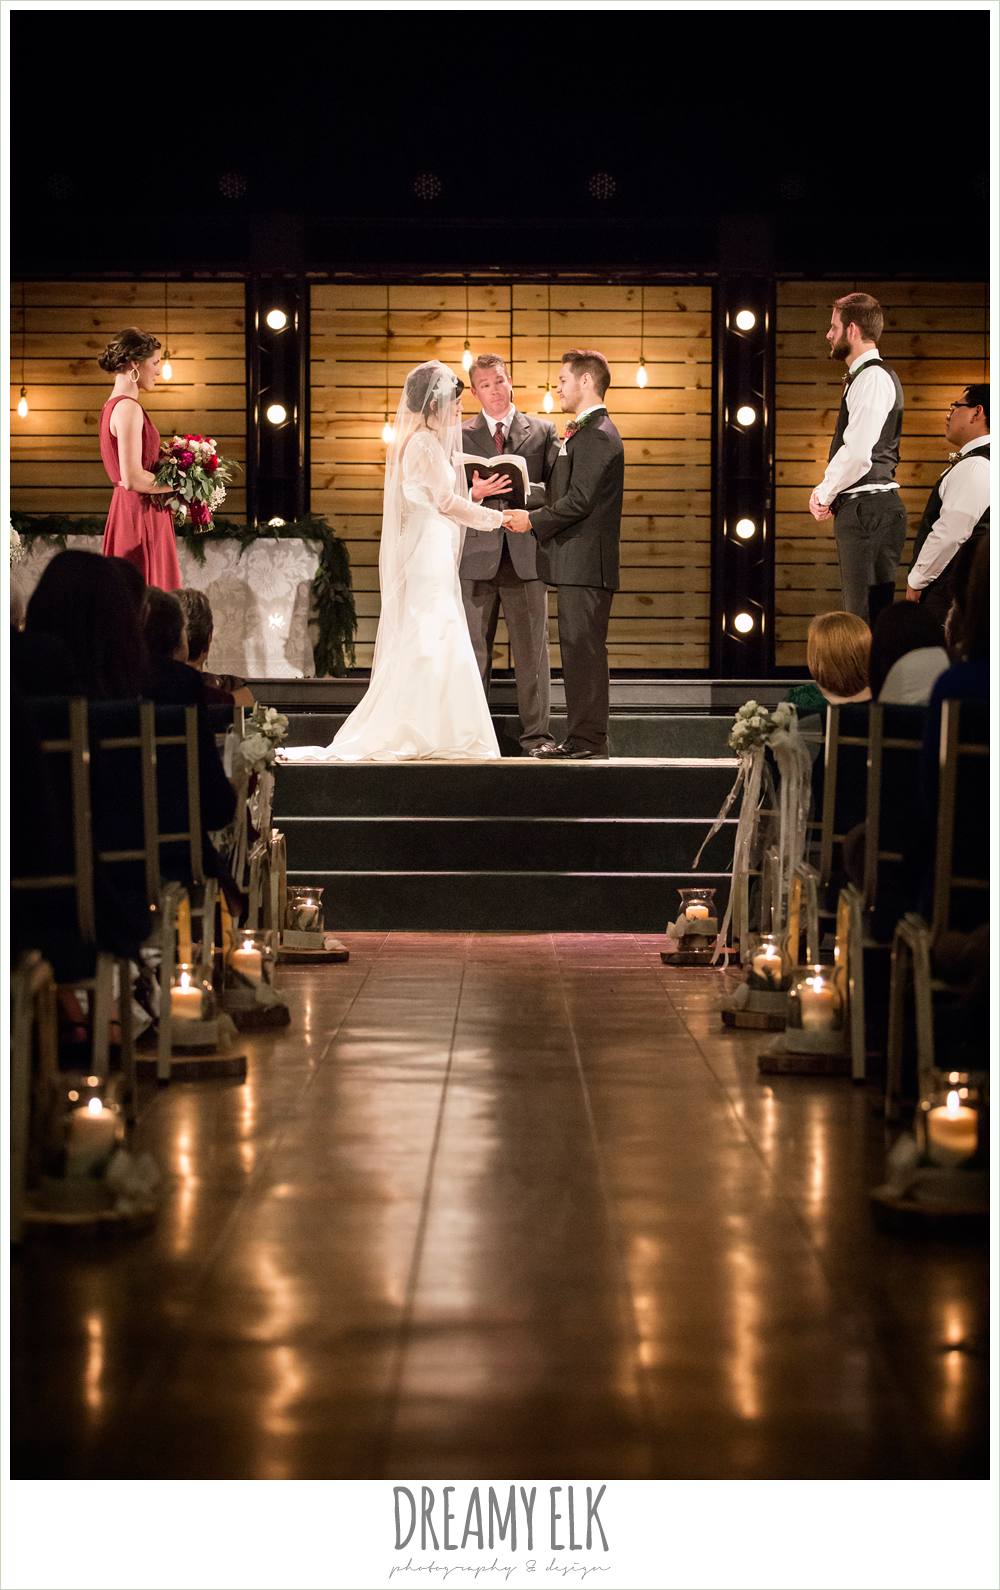 indoor winter december church ceremony wedding photo {dreamy elk photography and design}